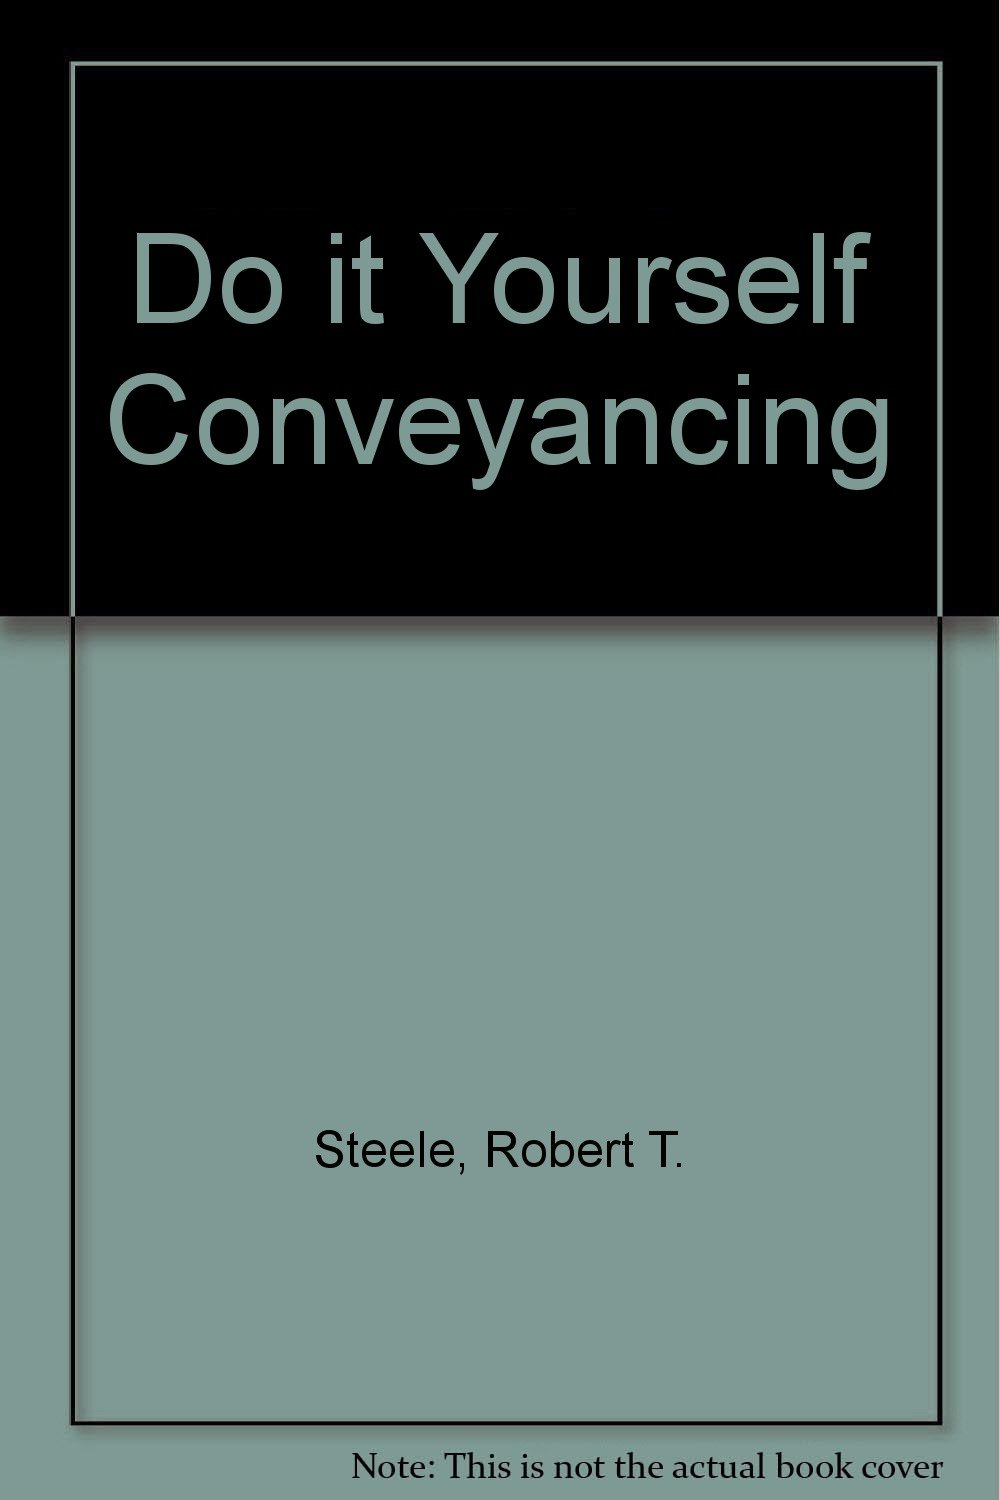 Do it yourself conveyancing robert t steele 9780715386699 amazon do it yourself conveyancing robert t steele 9780715386699 amazon books solutioingenieria Image collections